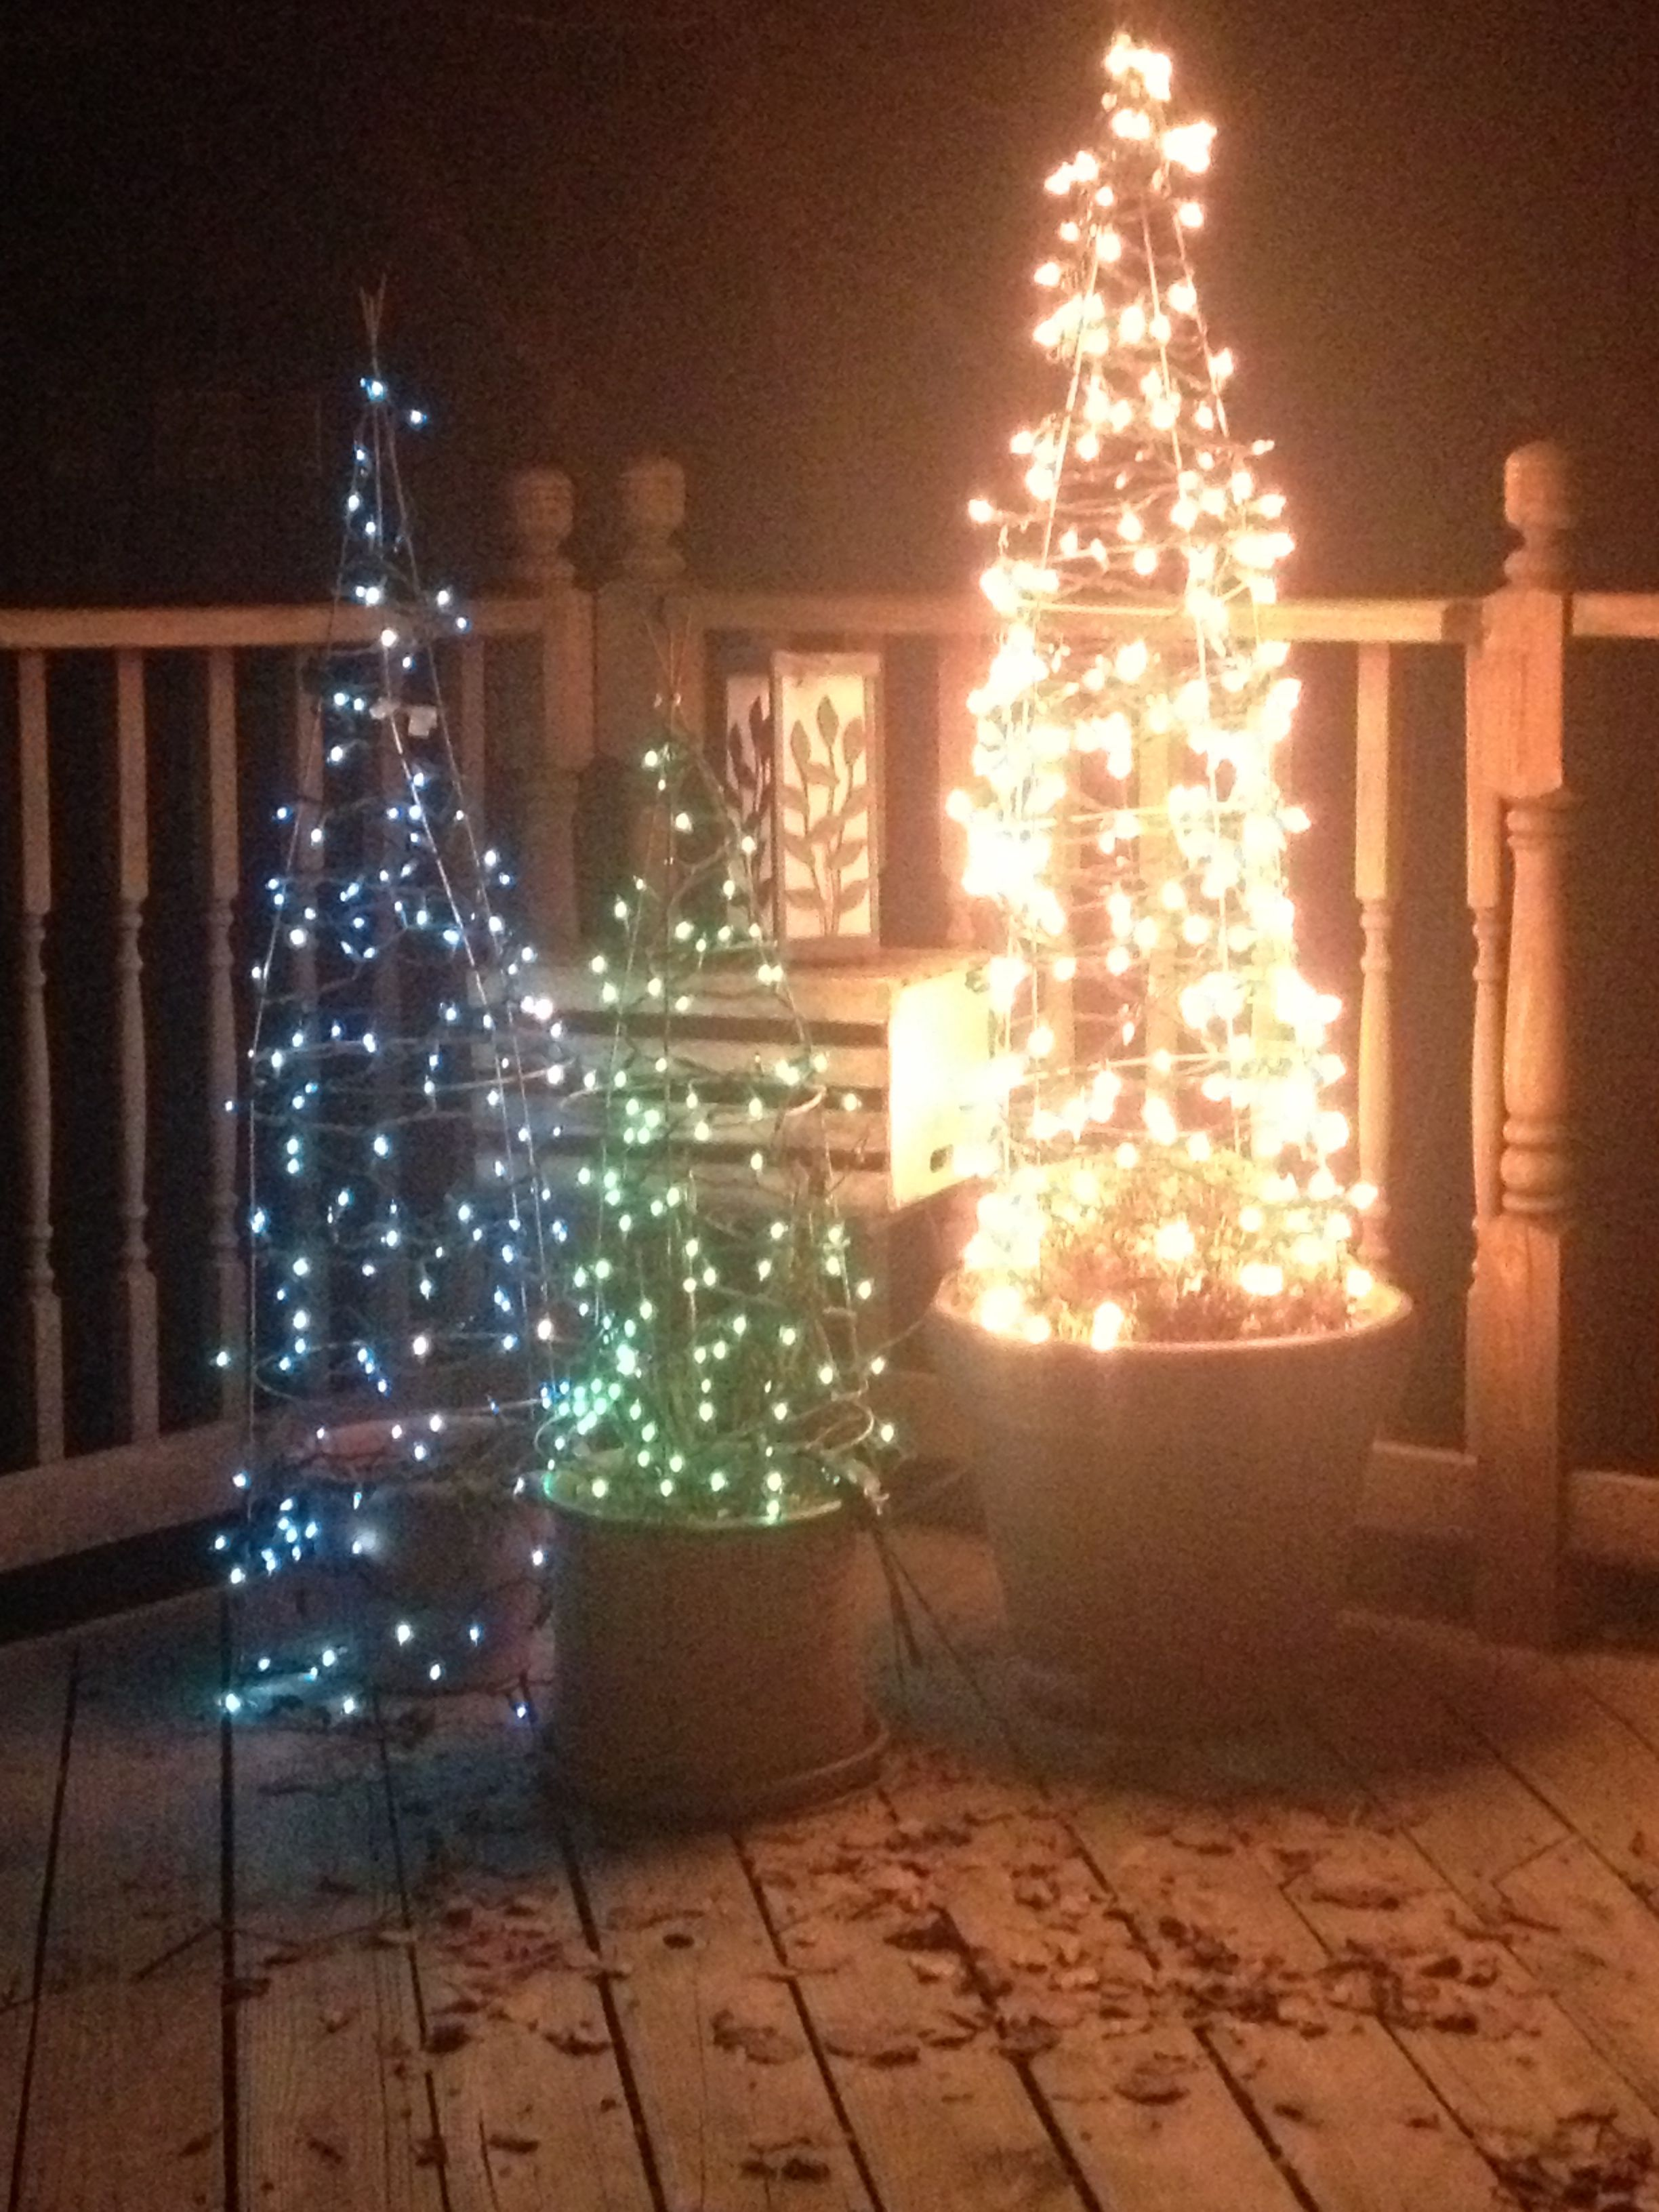 Wrap Christmas lights around your tomato cages and make mini Christmas trees ! & Amazing idea! Wrap Christmas lights around your tomato cages and ...